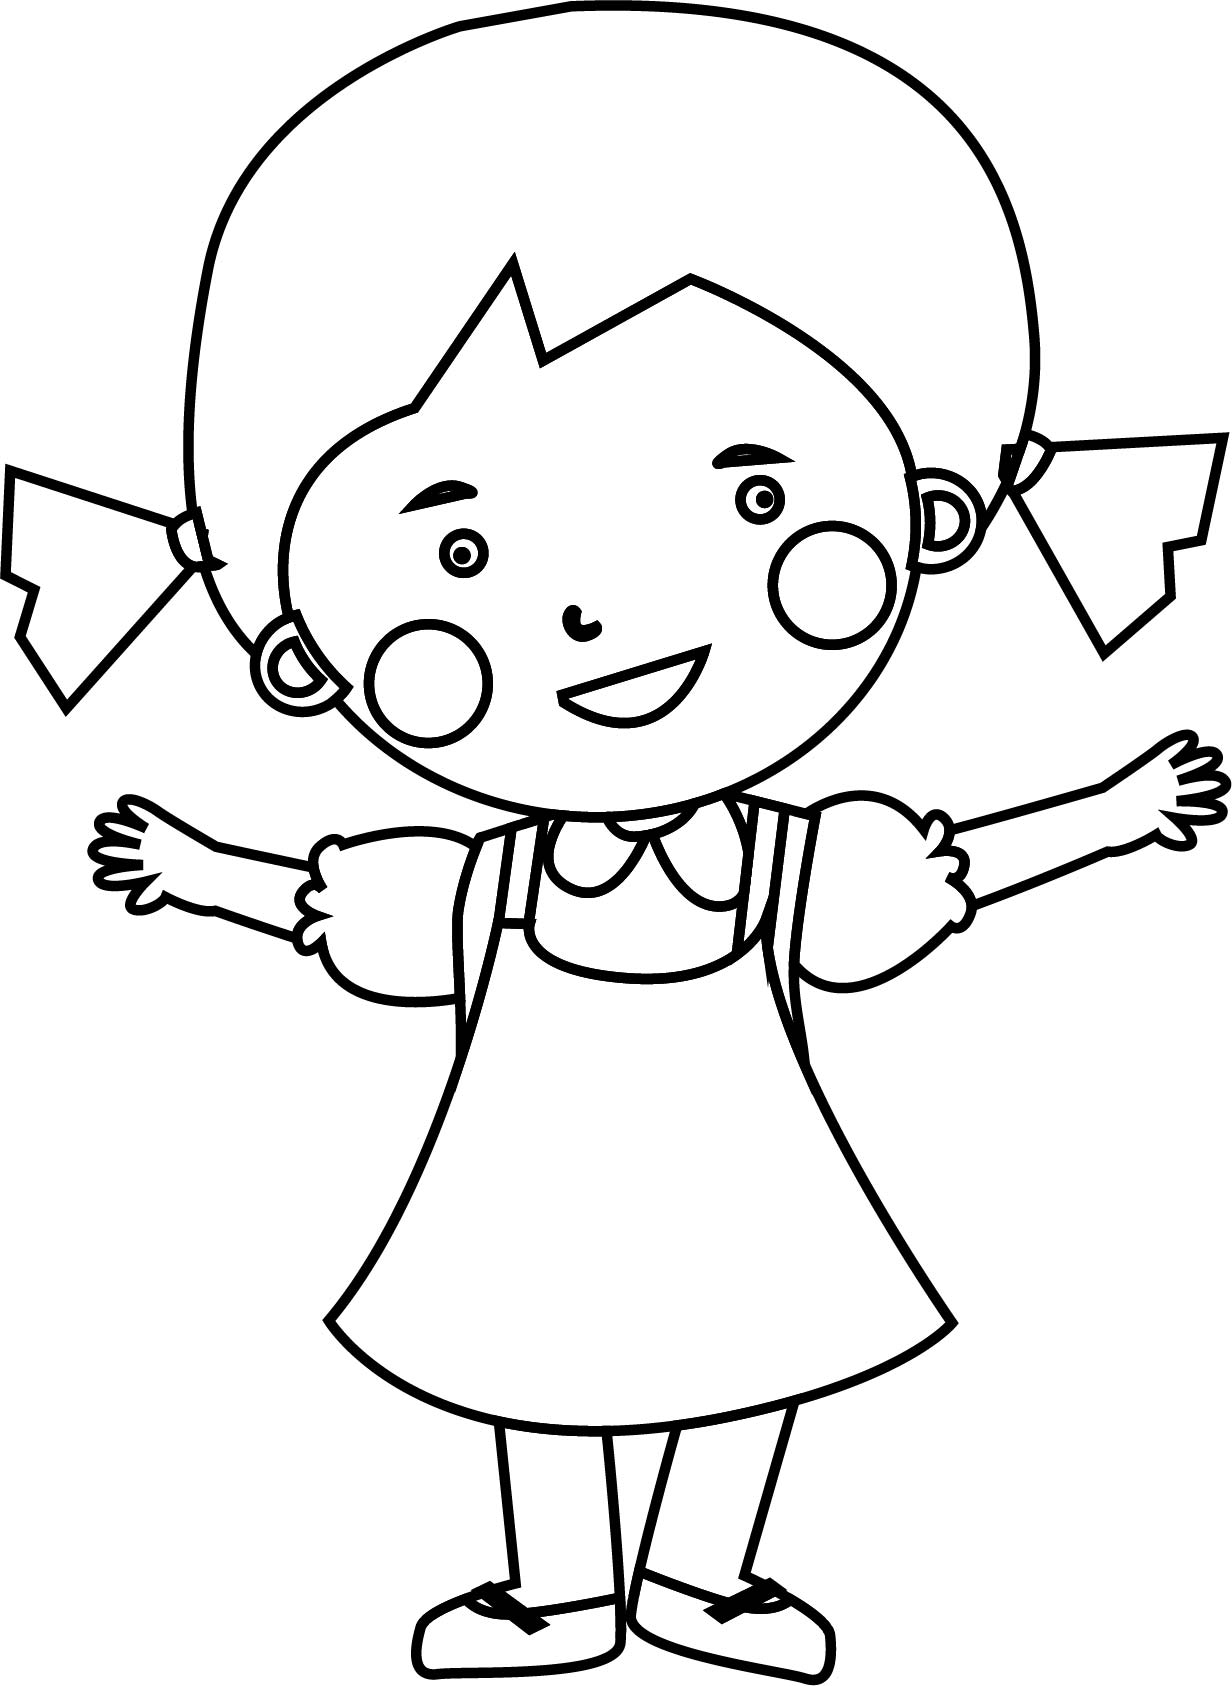 Cute Child Girl Coloring Page | Wecoloringpage.com